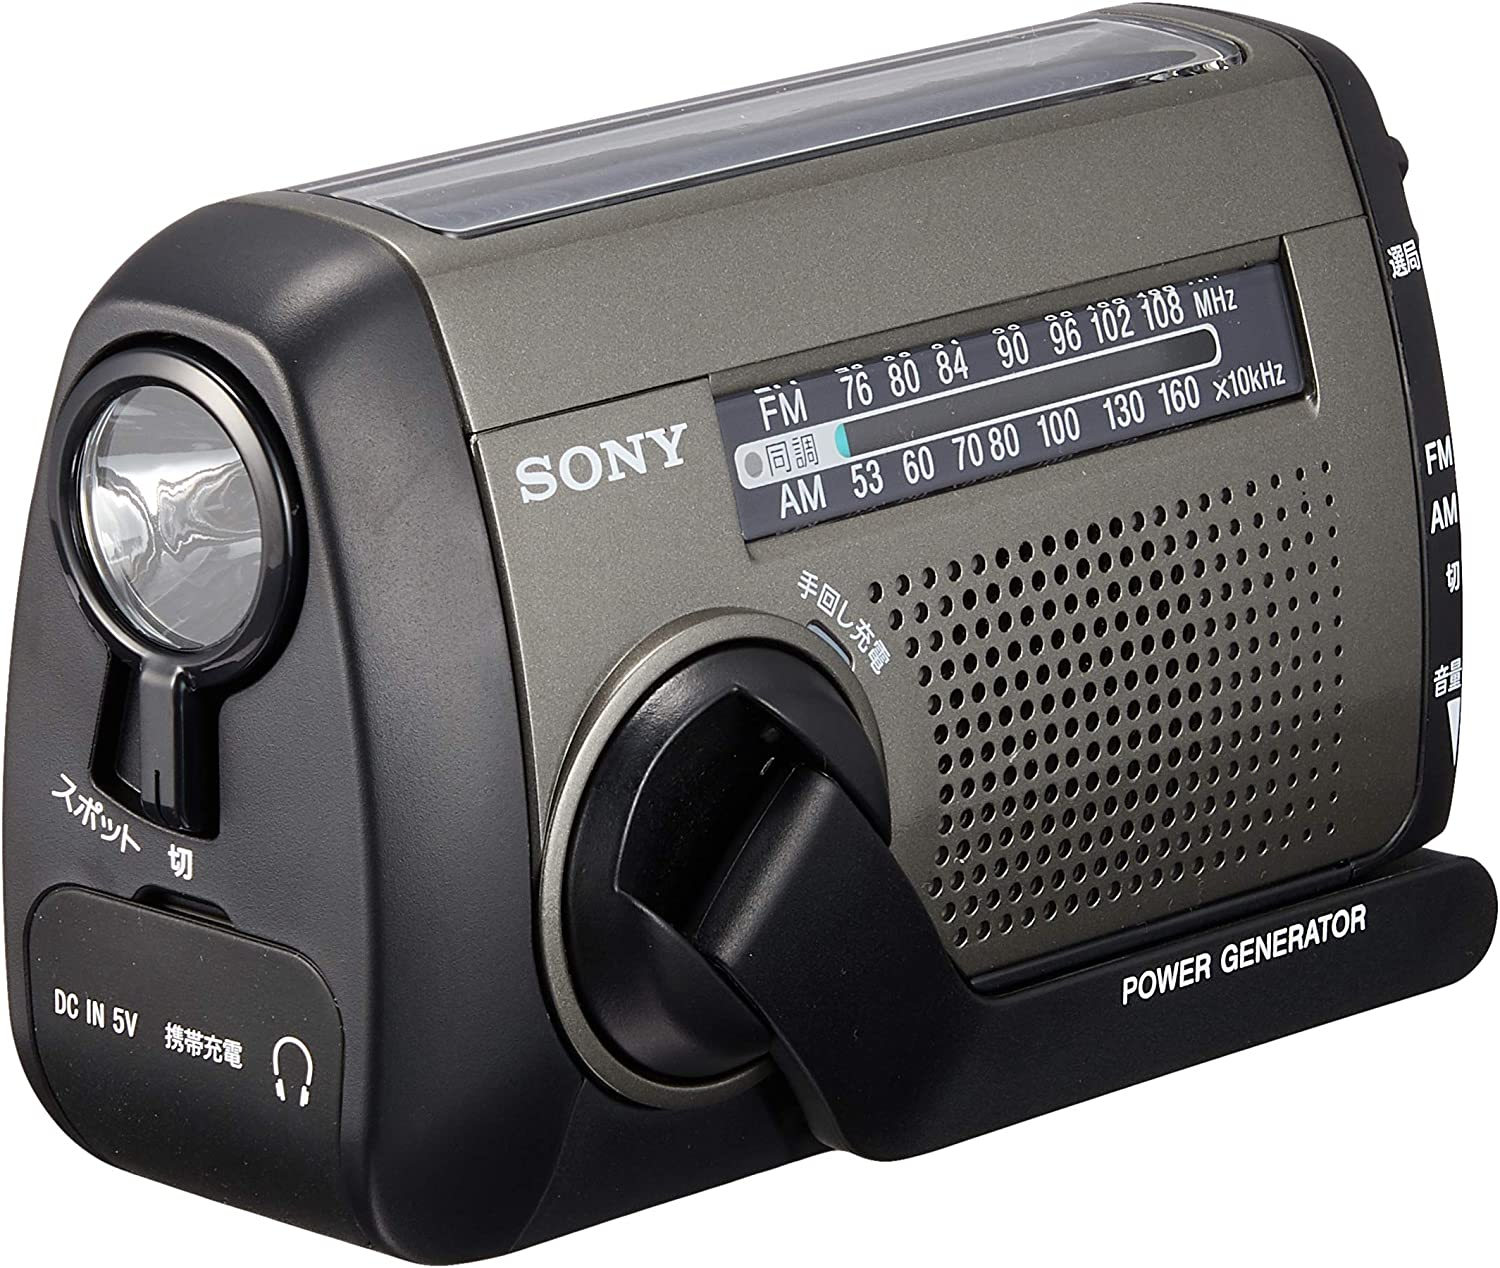 SONY FM / AM portable Survival radio with LED light Smartphone